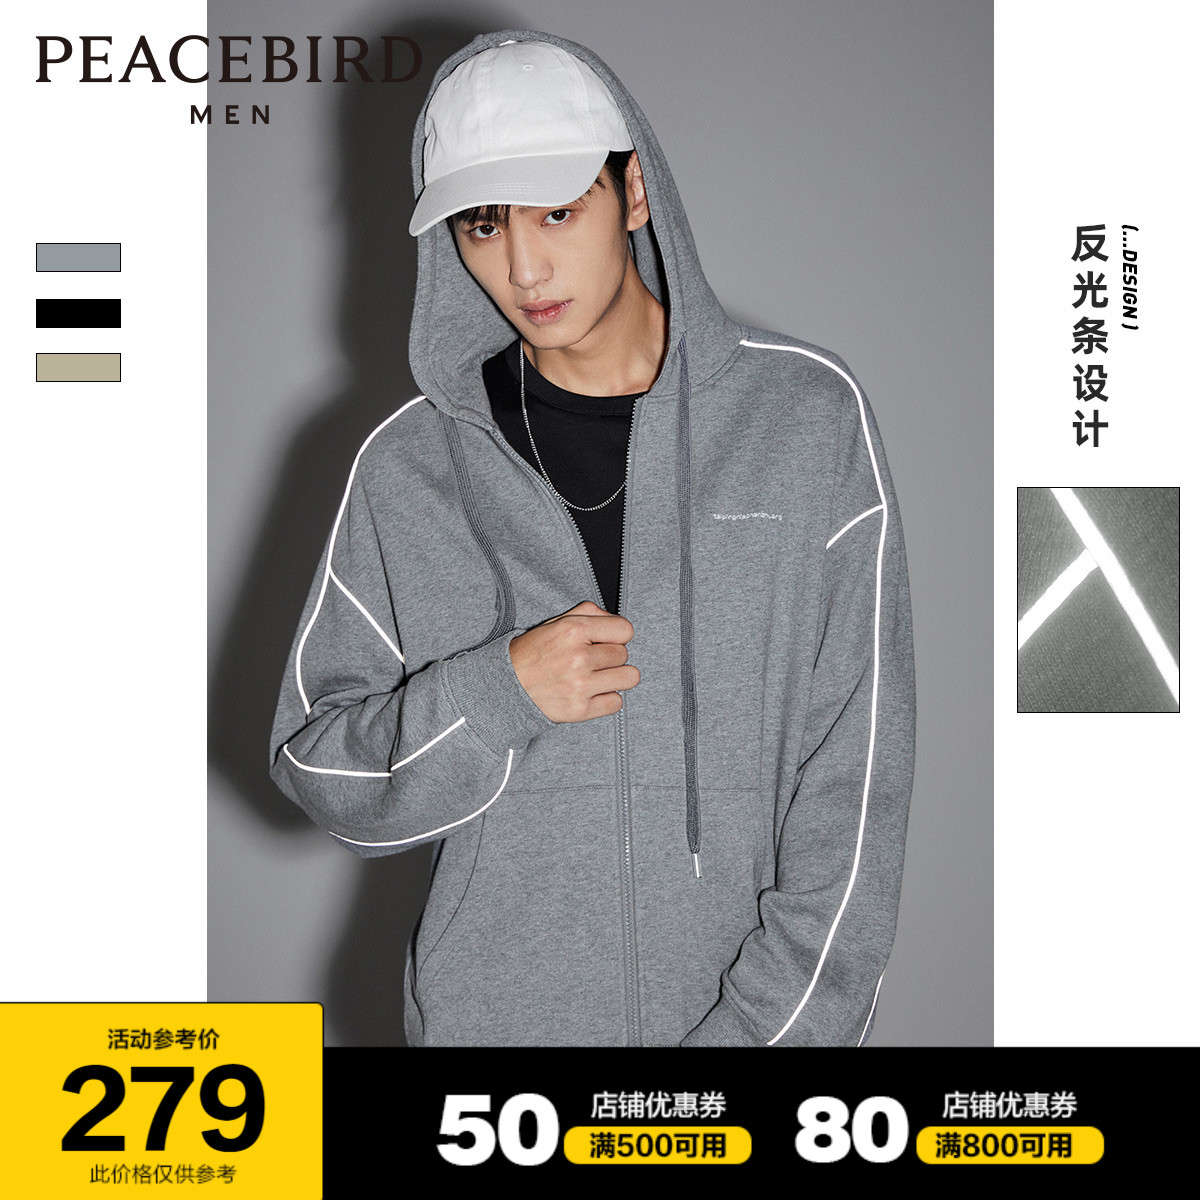 Peacebird Men's Wear Spring New Fashion Cardigan Sweater Men's Sports Gray Hooded Reflective Design Jacket Trend